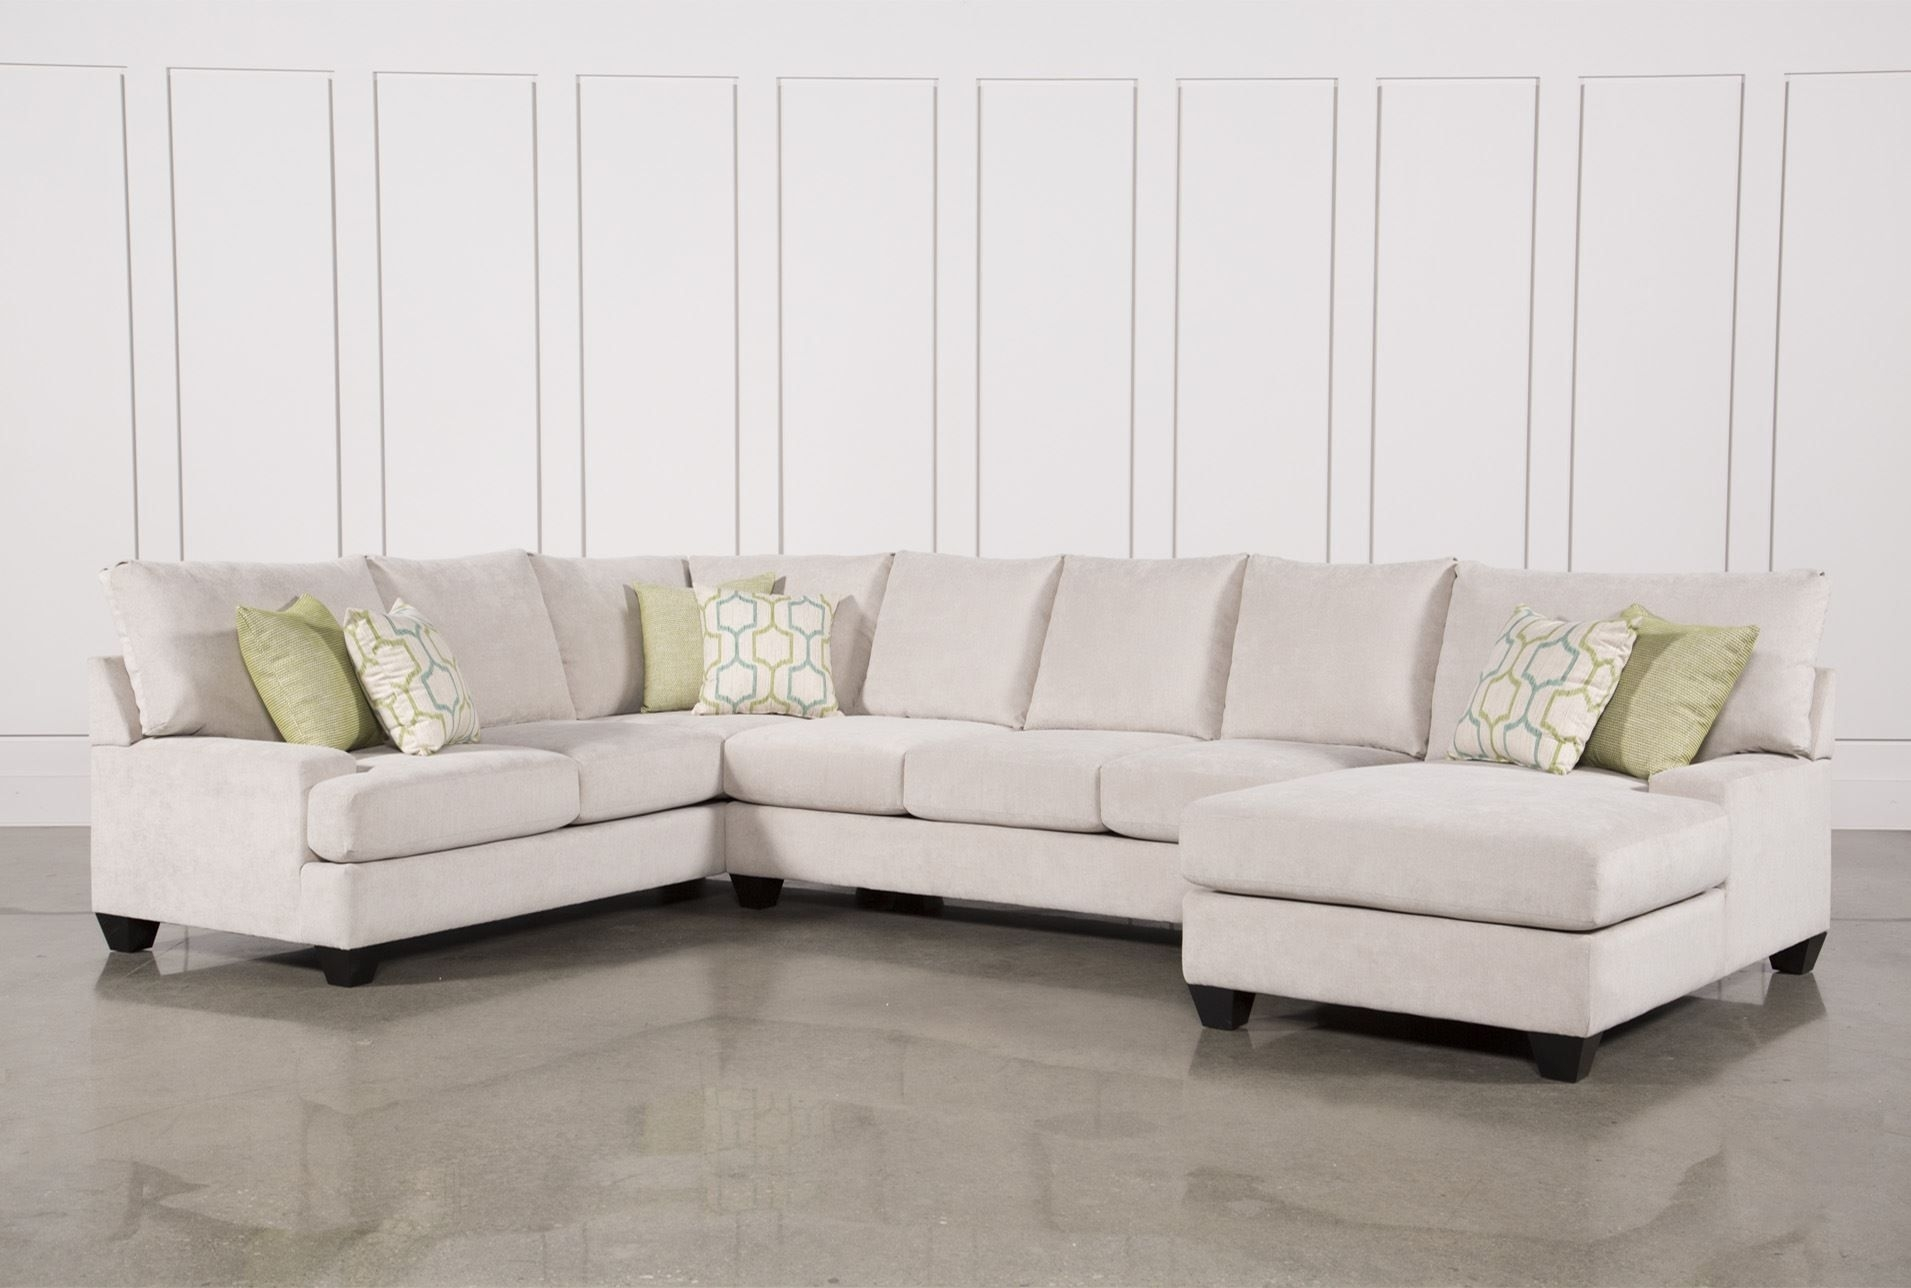 Harper Foam 3 Piece Sectional W/raf Chaise | Family Room | Pinterest Within Mesa Foam 2 Piece Sectionals (Image 8 of 25)